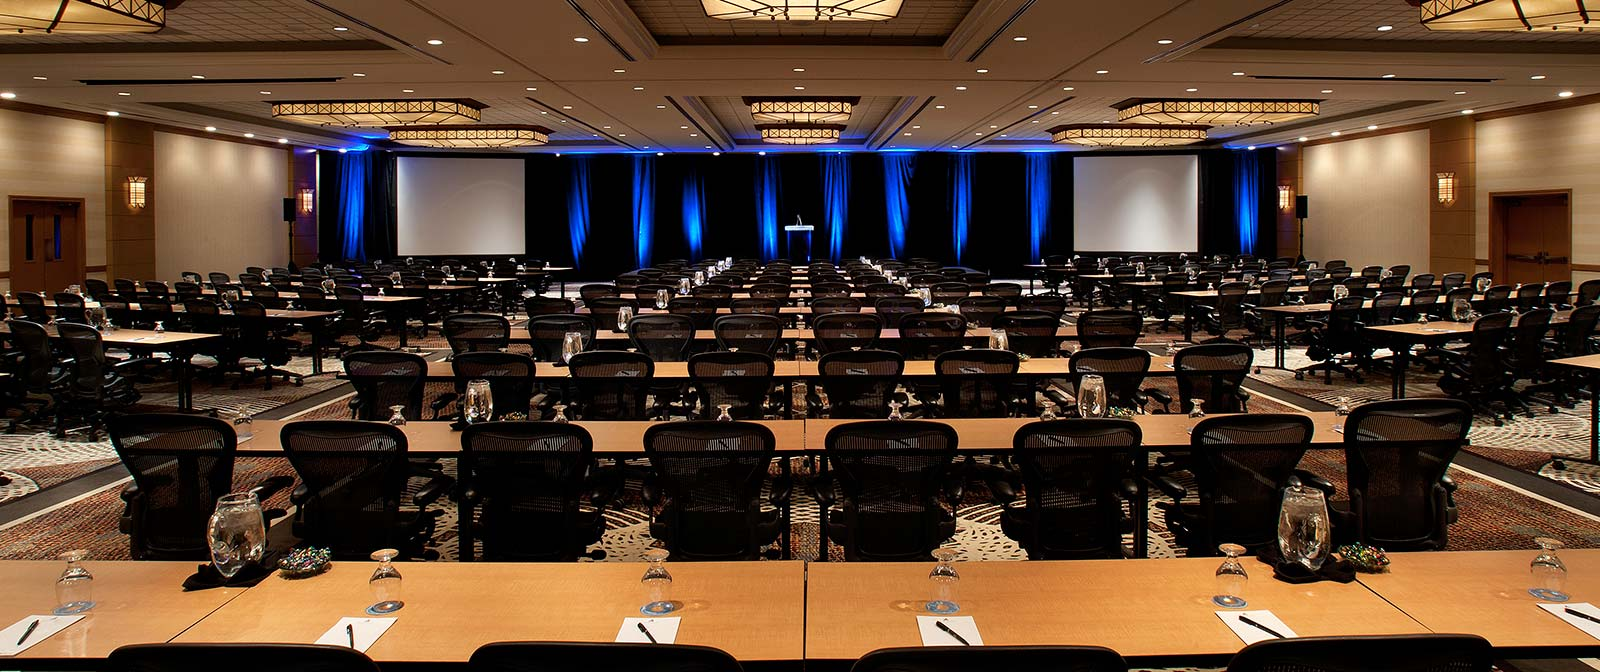 5843d1d65ebb0_int-meetings-Conference-Setup2.jpg